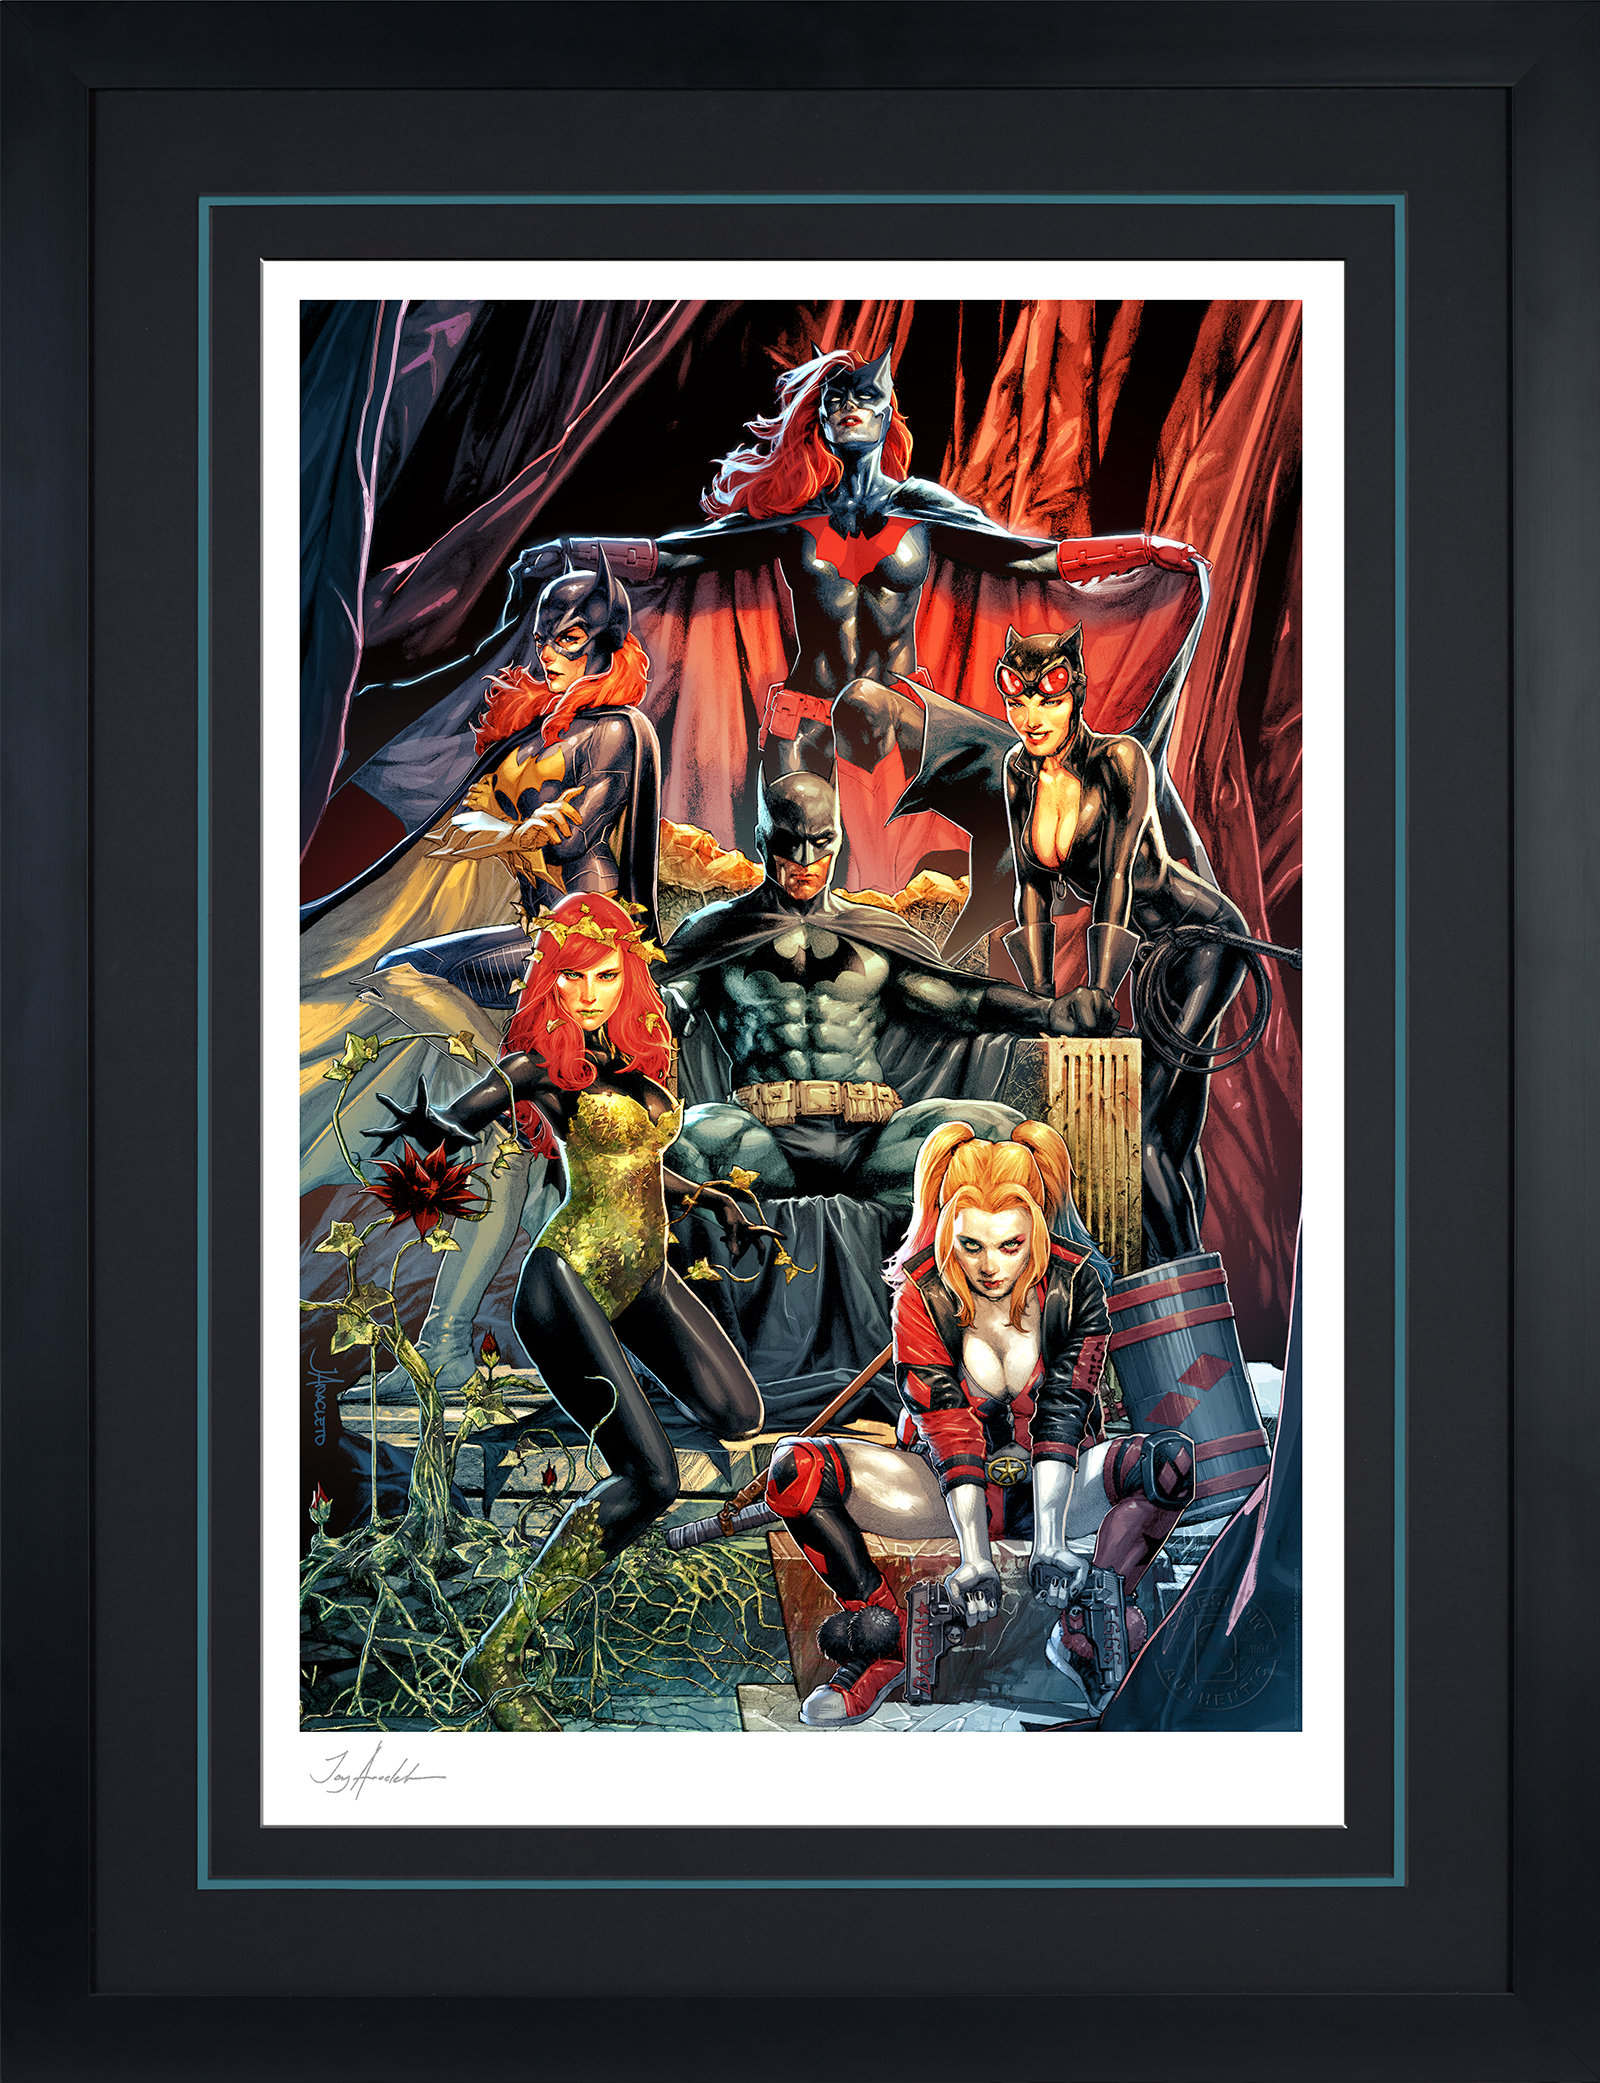 Sideshow Collectibles Batman: Detective Comics #1000 Art Print